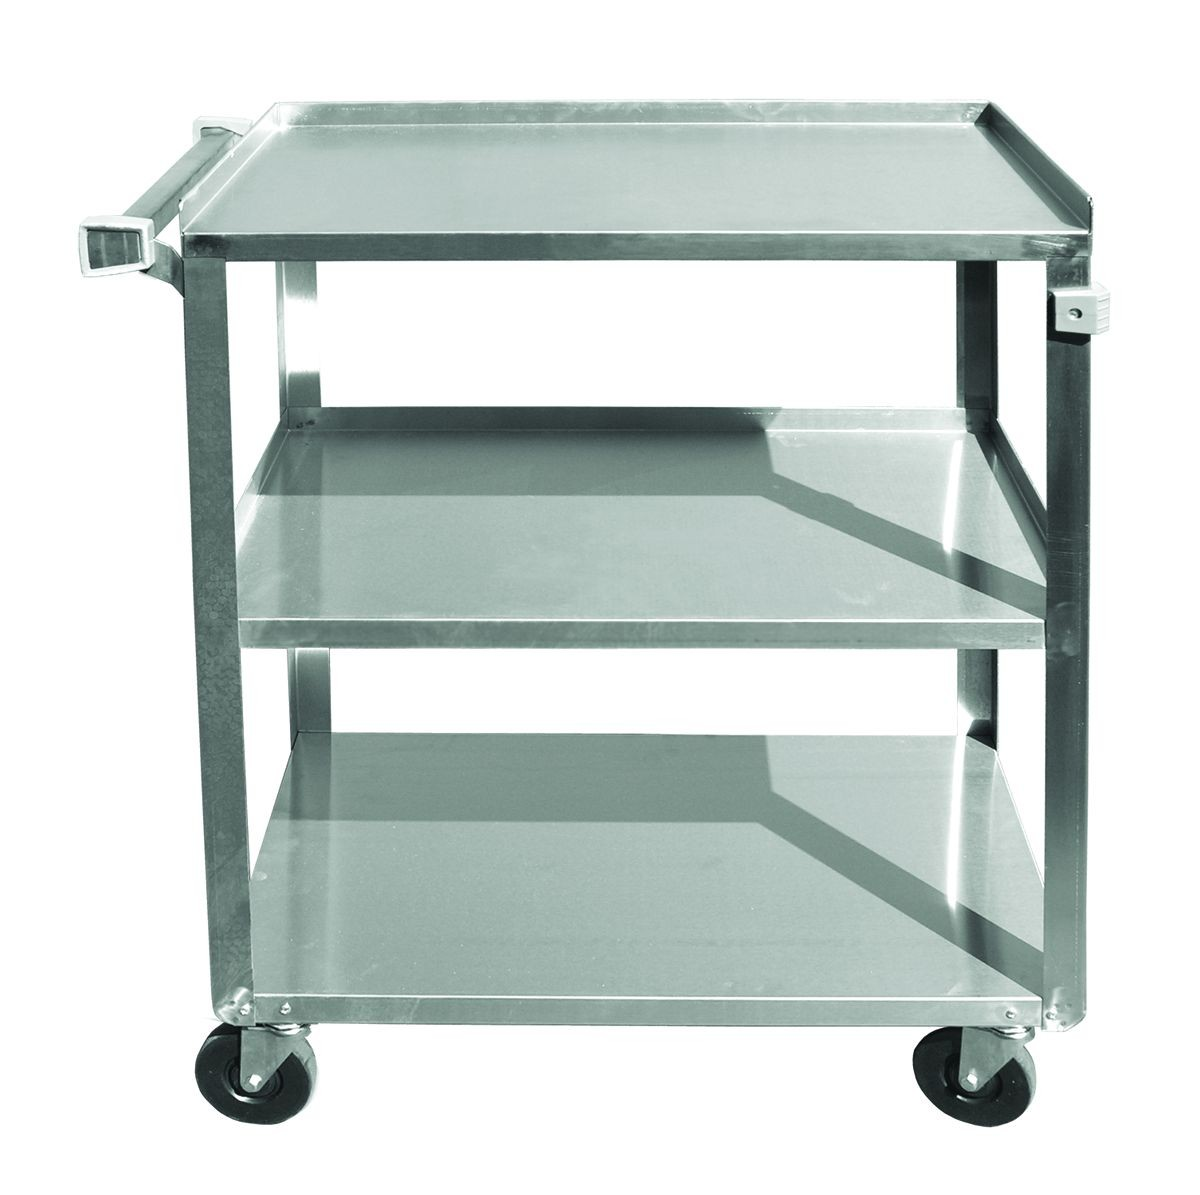 Update International BC-2415SS Stainless Steel Bus Cart